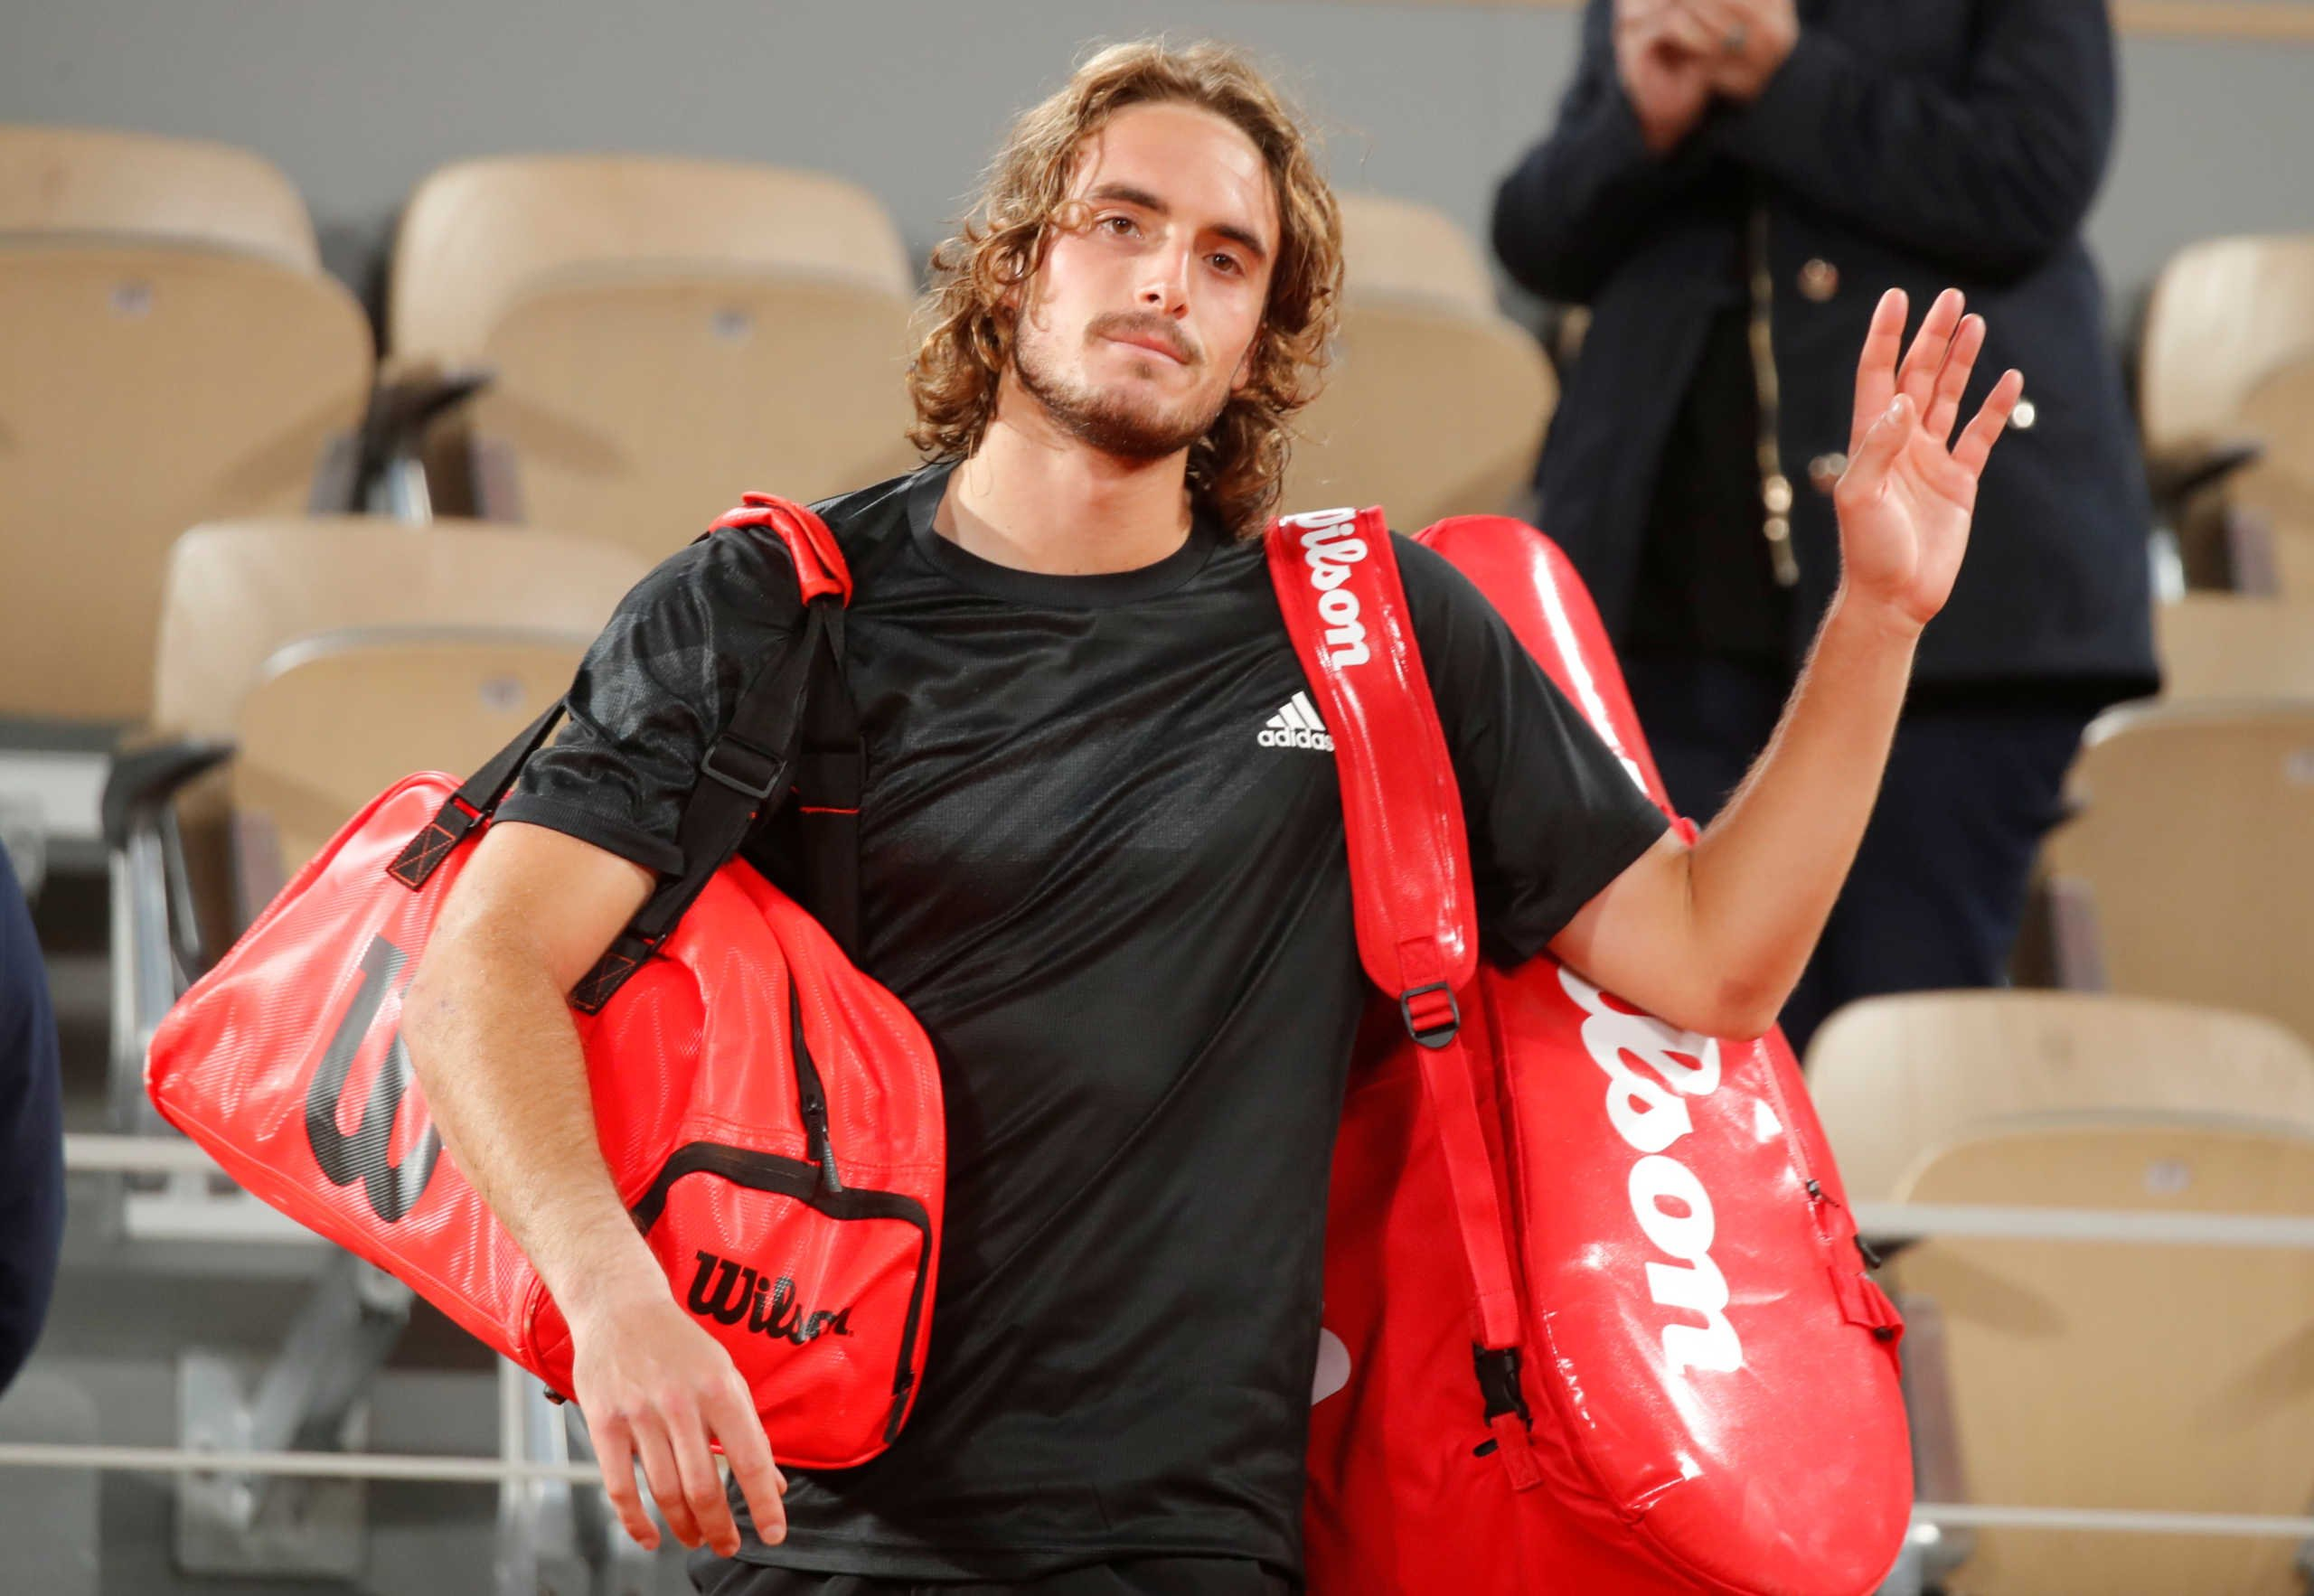 tsitsipas-scaled.jpg